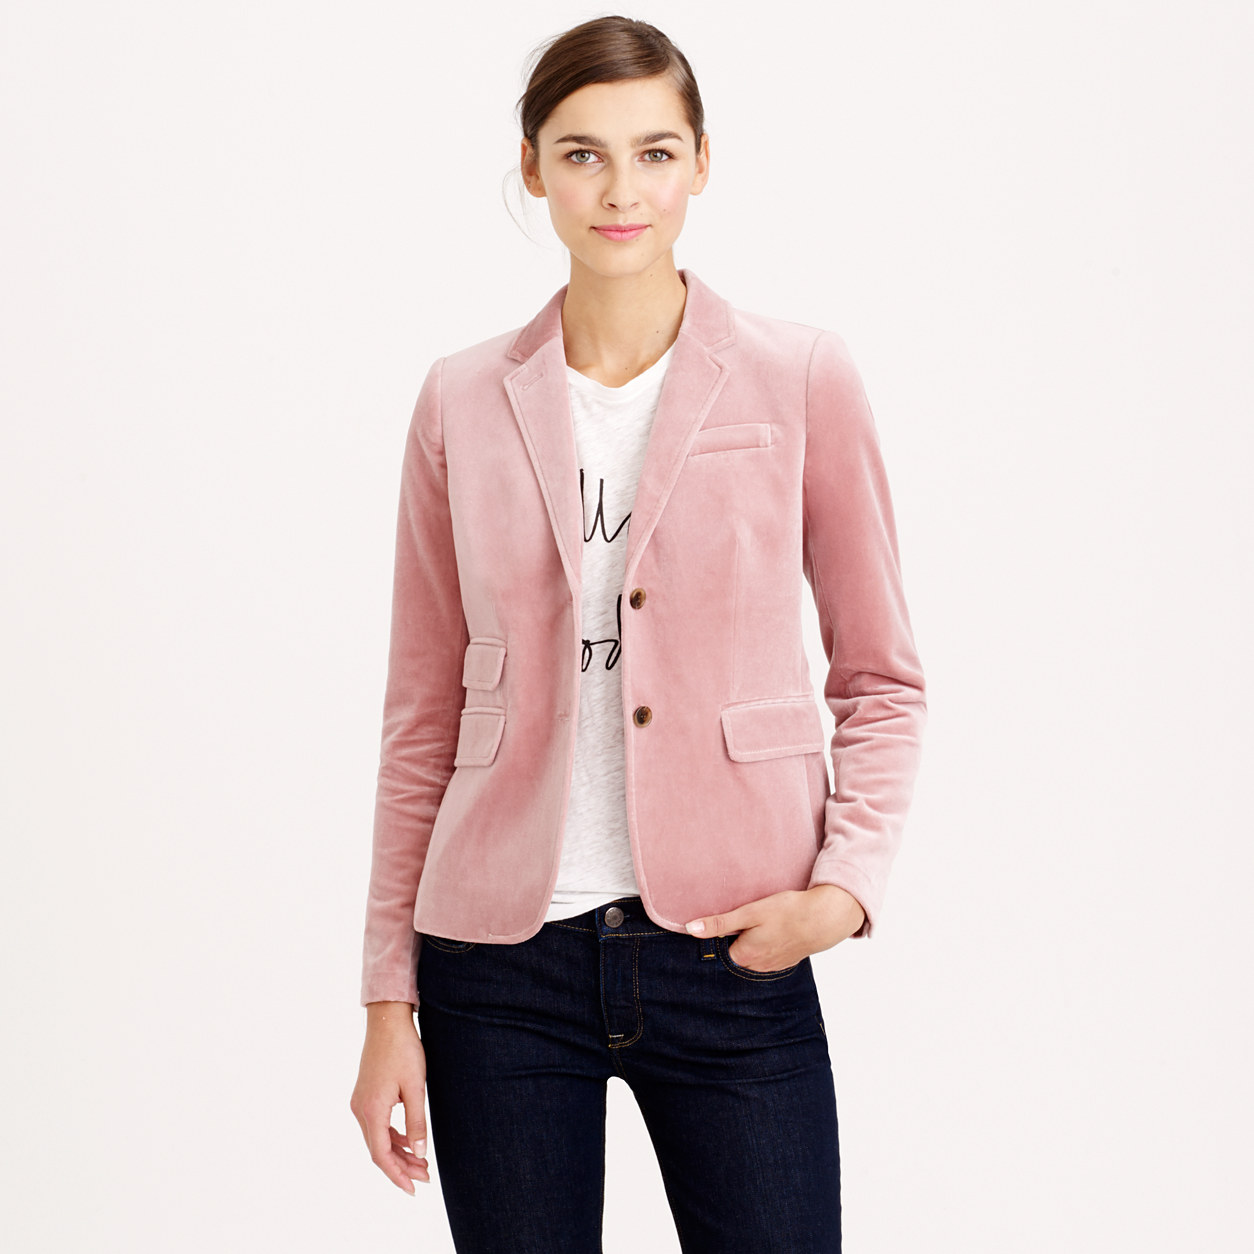 To get the most mileage out of Sara Battaglia's baby-pink blazer, wear yours with a graphic tee, denim and pointed pumps – an outfit that works whether you're in or out of office.